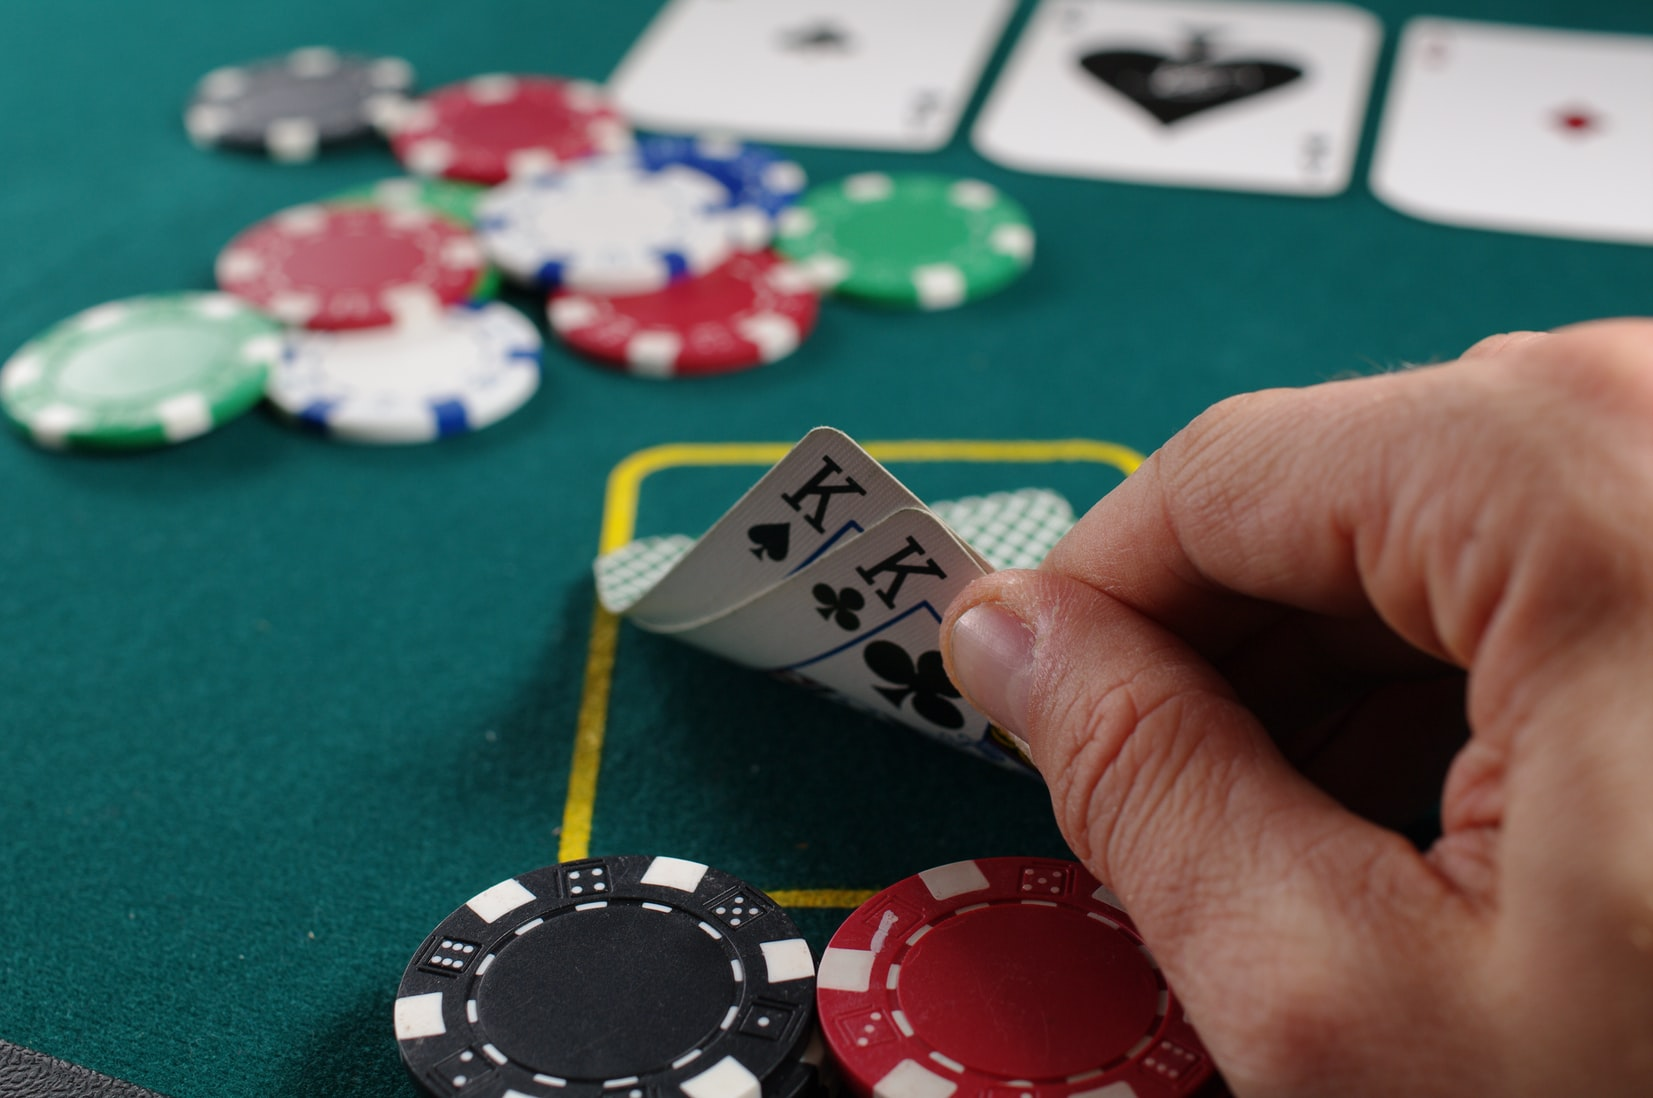 Renting game tables can help enhance the atmosphere at your casino night.